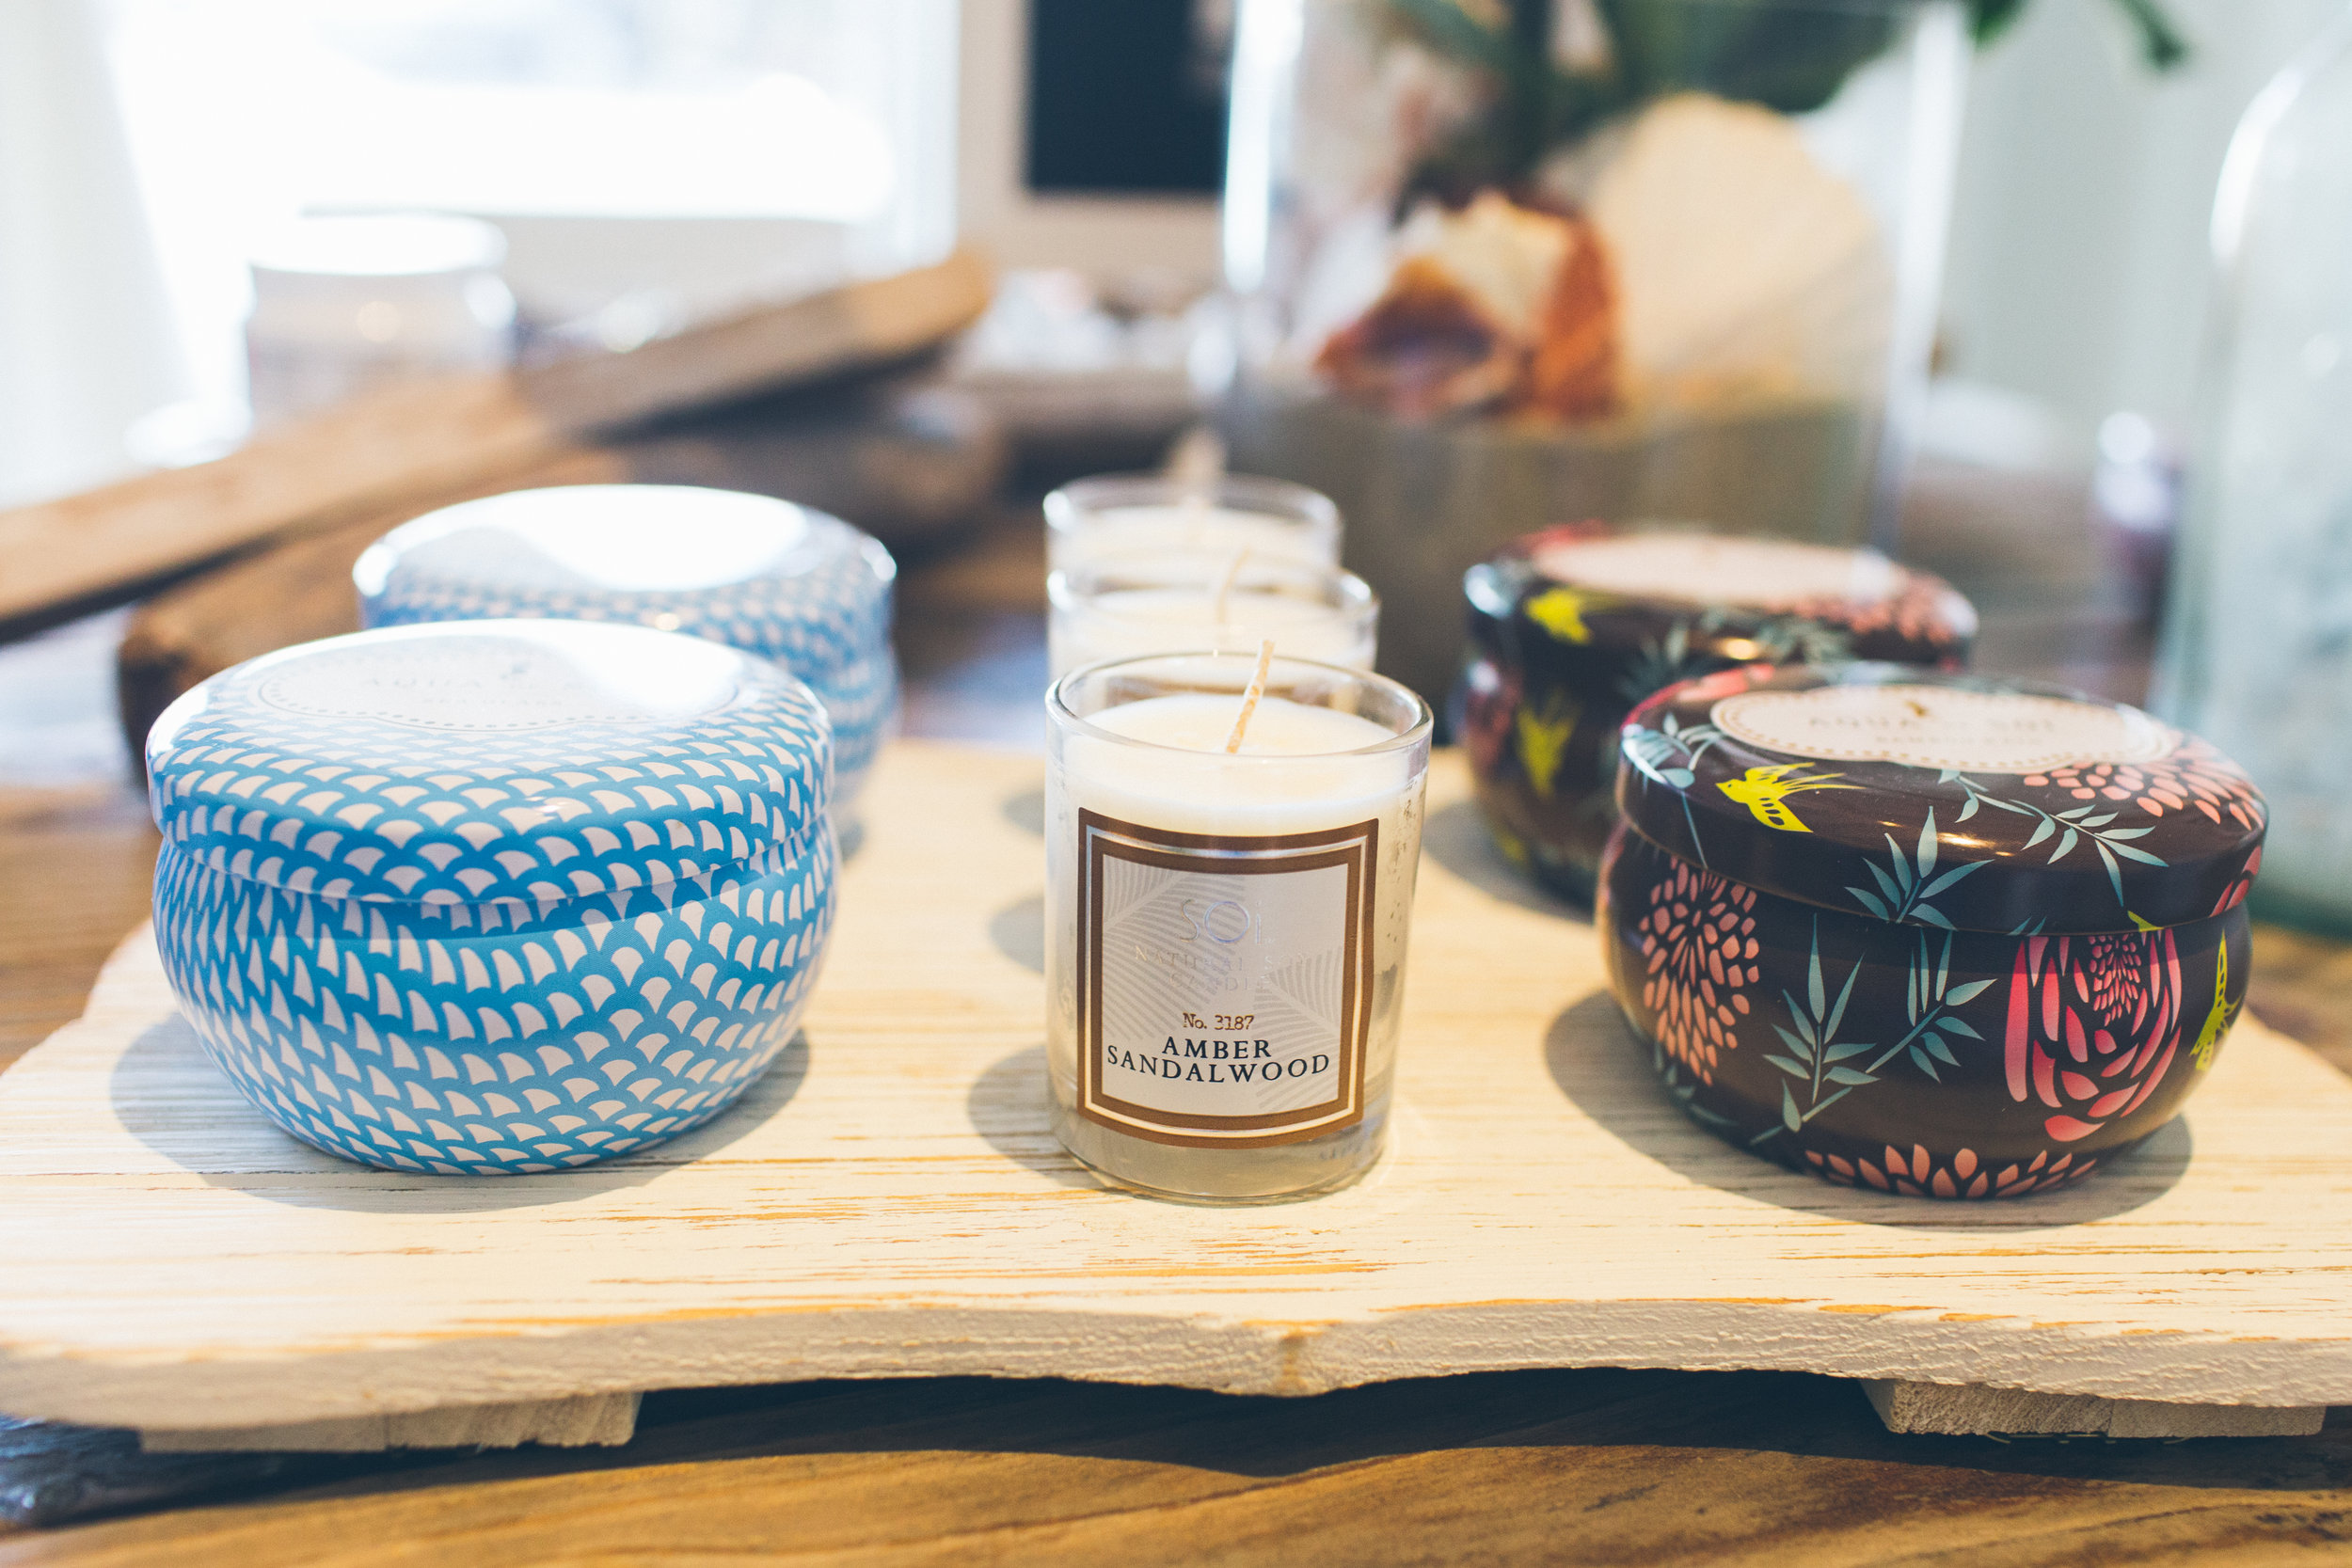 Barefoot-MMPhoto-product-candles.jpg